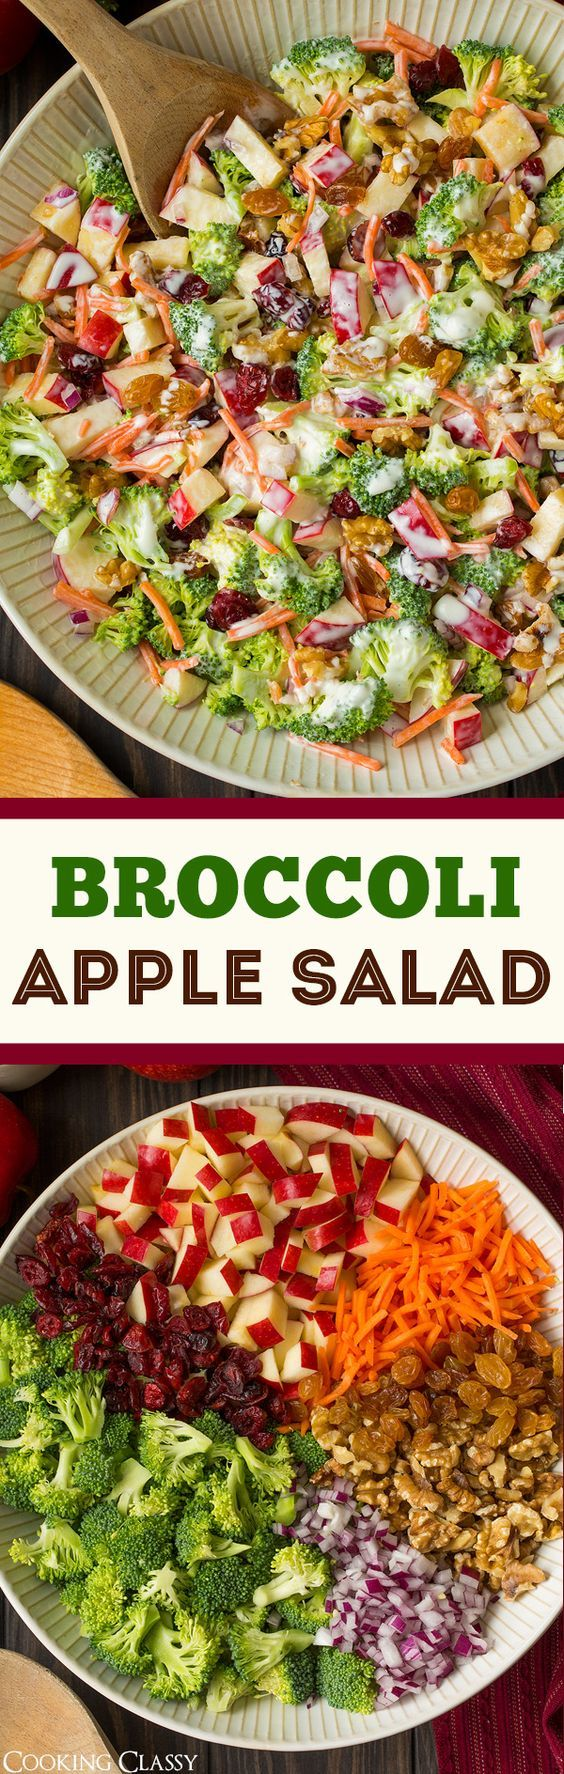 Broccoli Apple Salad - Cooking Classy #couponing